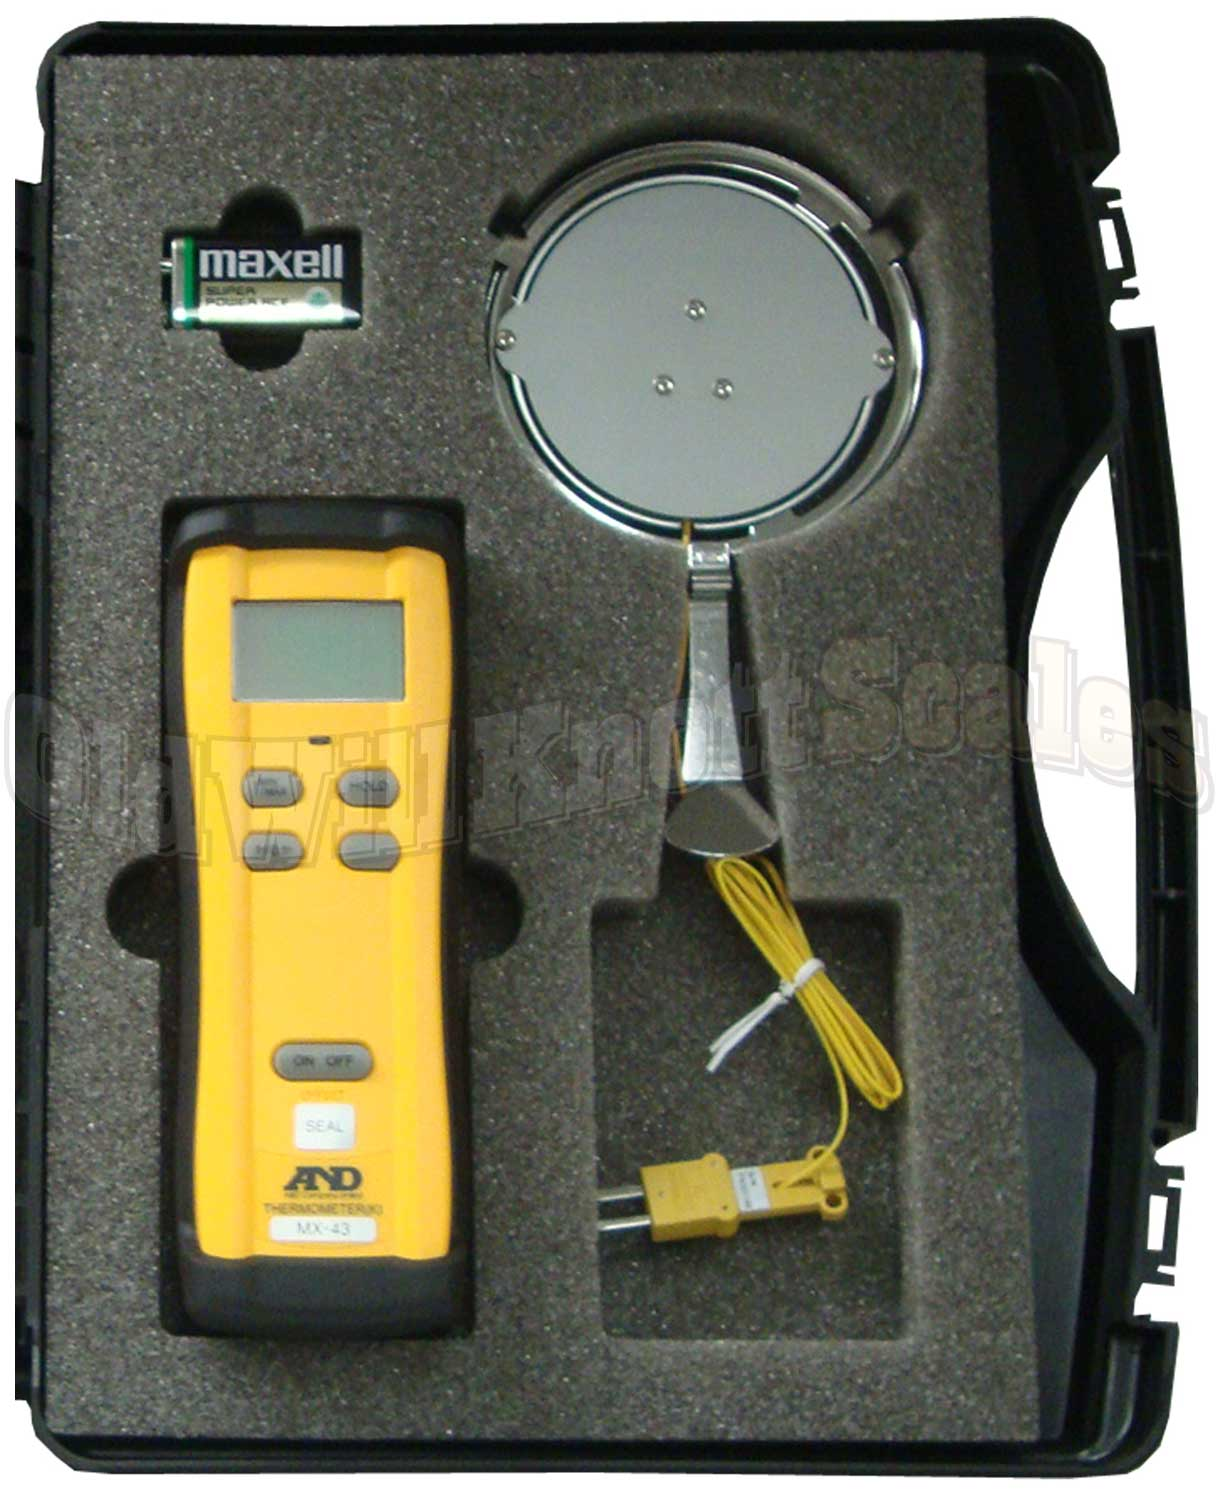 Scale Calibration Weights >> A&D Scales AX-43 Temperature Calibrator for A&D MS-70 & MX-50